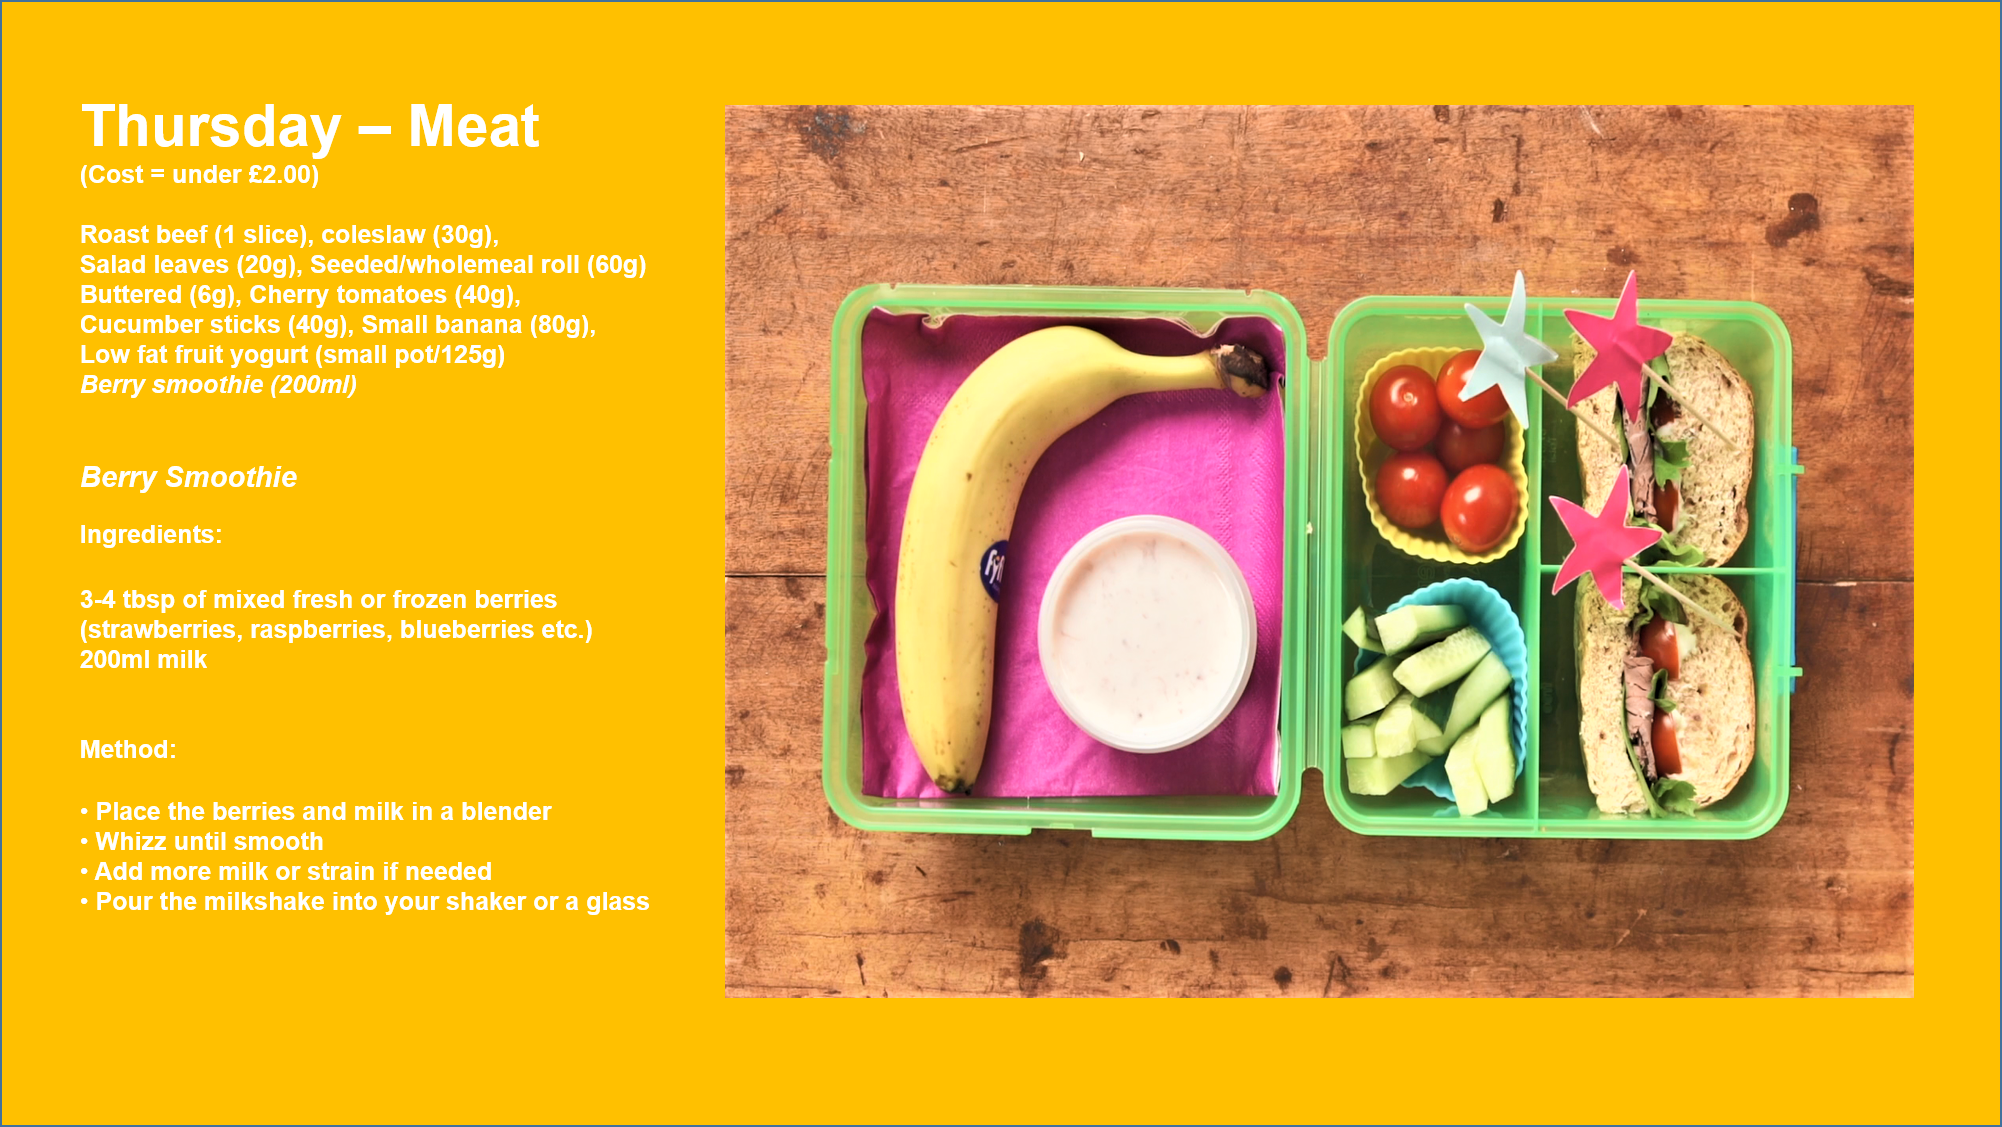 School lunchbox with meat